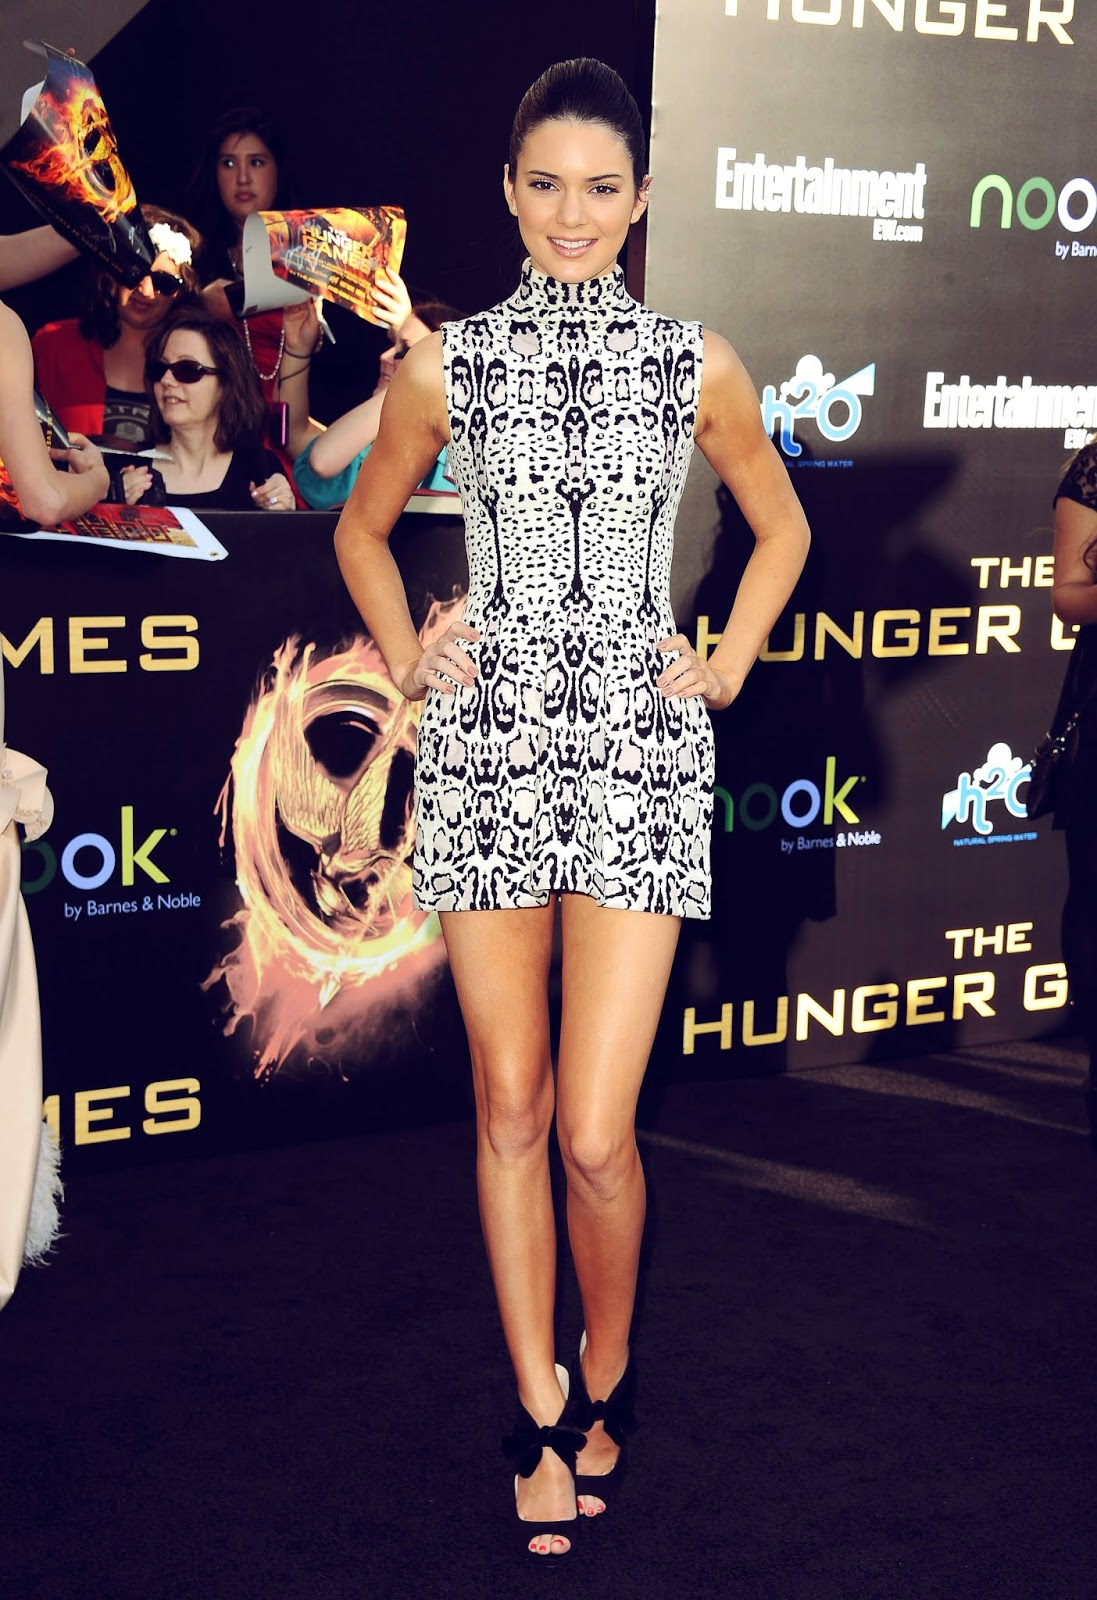 36 - At The Hunger Games Los Angeles Premiere on March 12, 2012